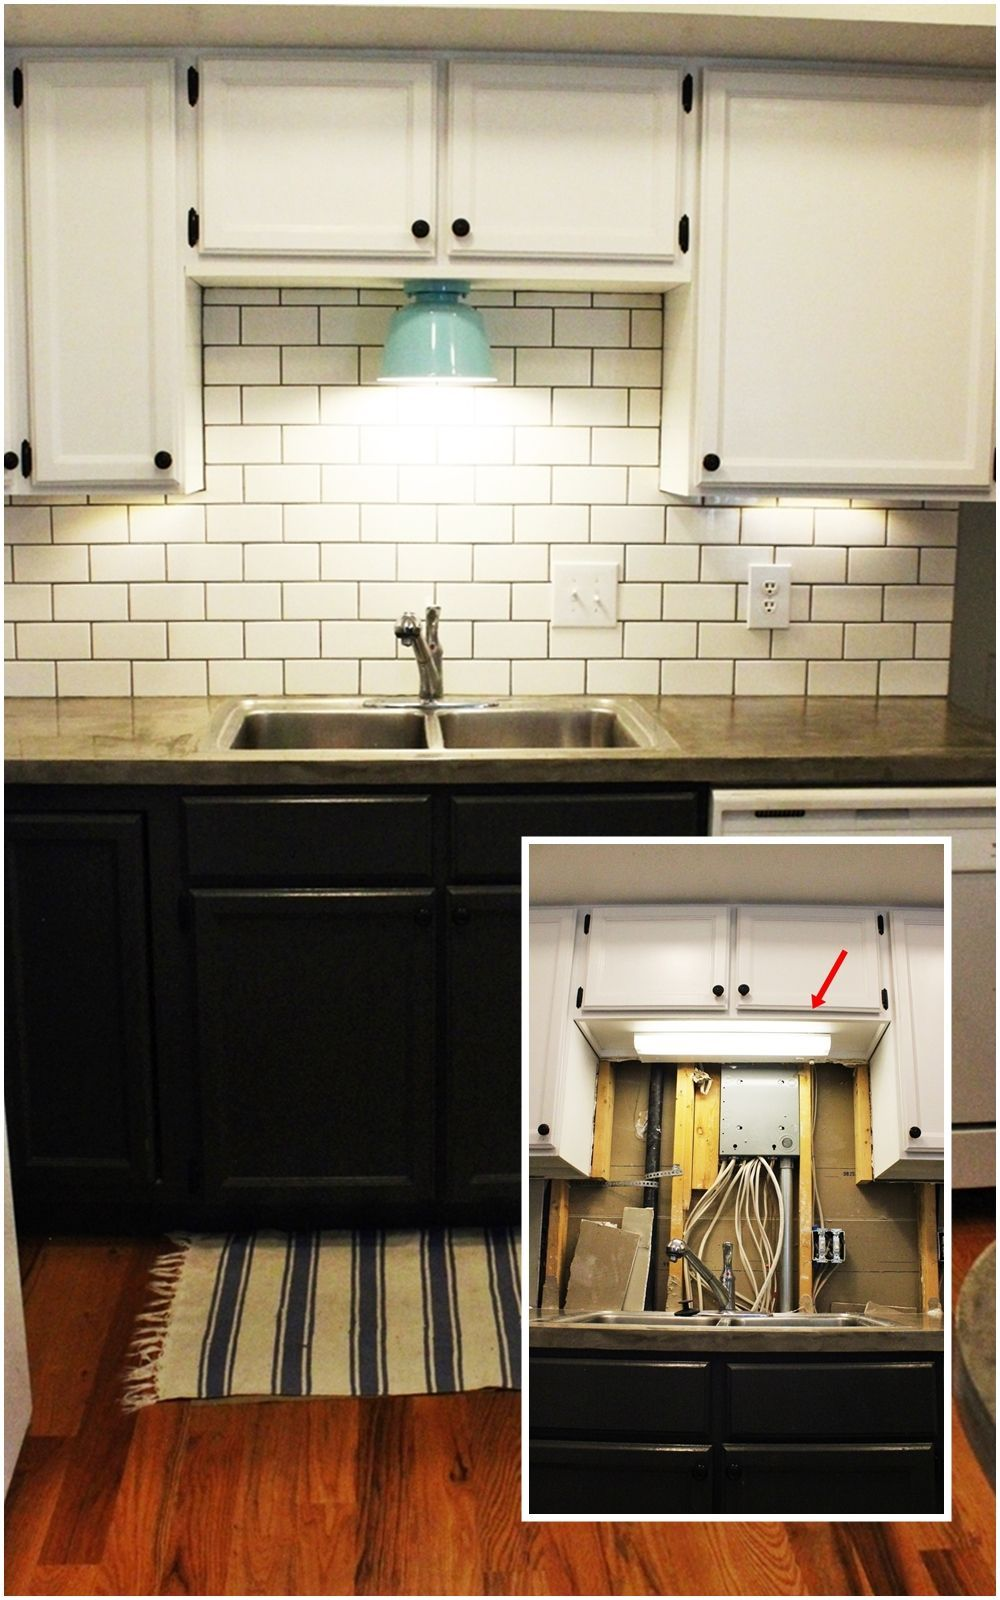 Diy kitchen lighting upgrade led under cabinet lights above the diy kitchen lighting upgrade led under cabinet lights above the sink light mozeypictures Choice Image